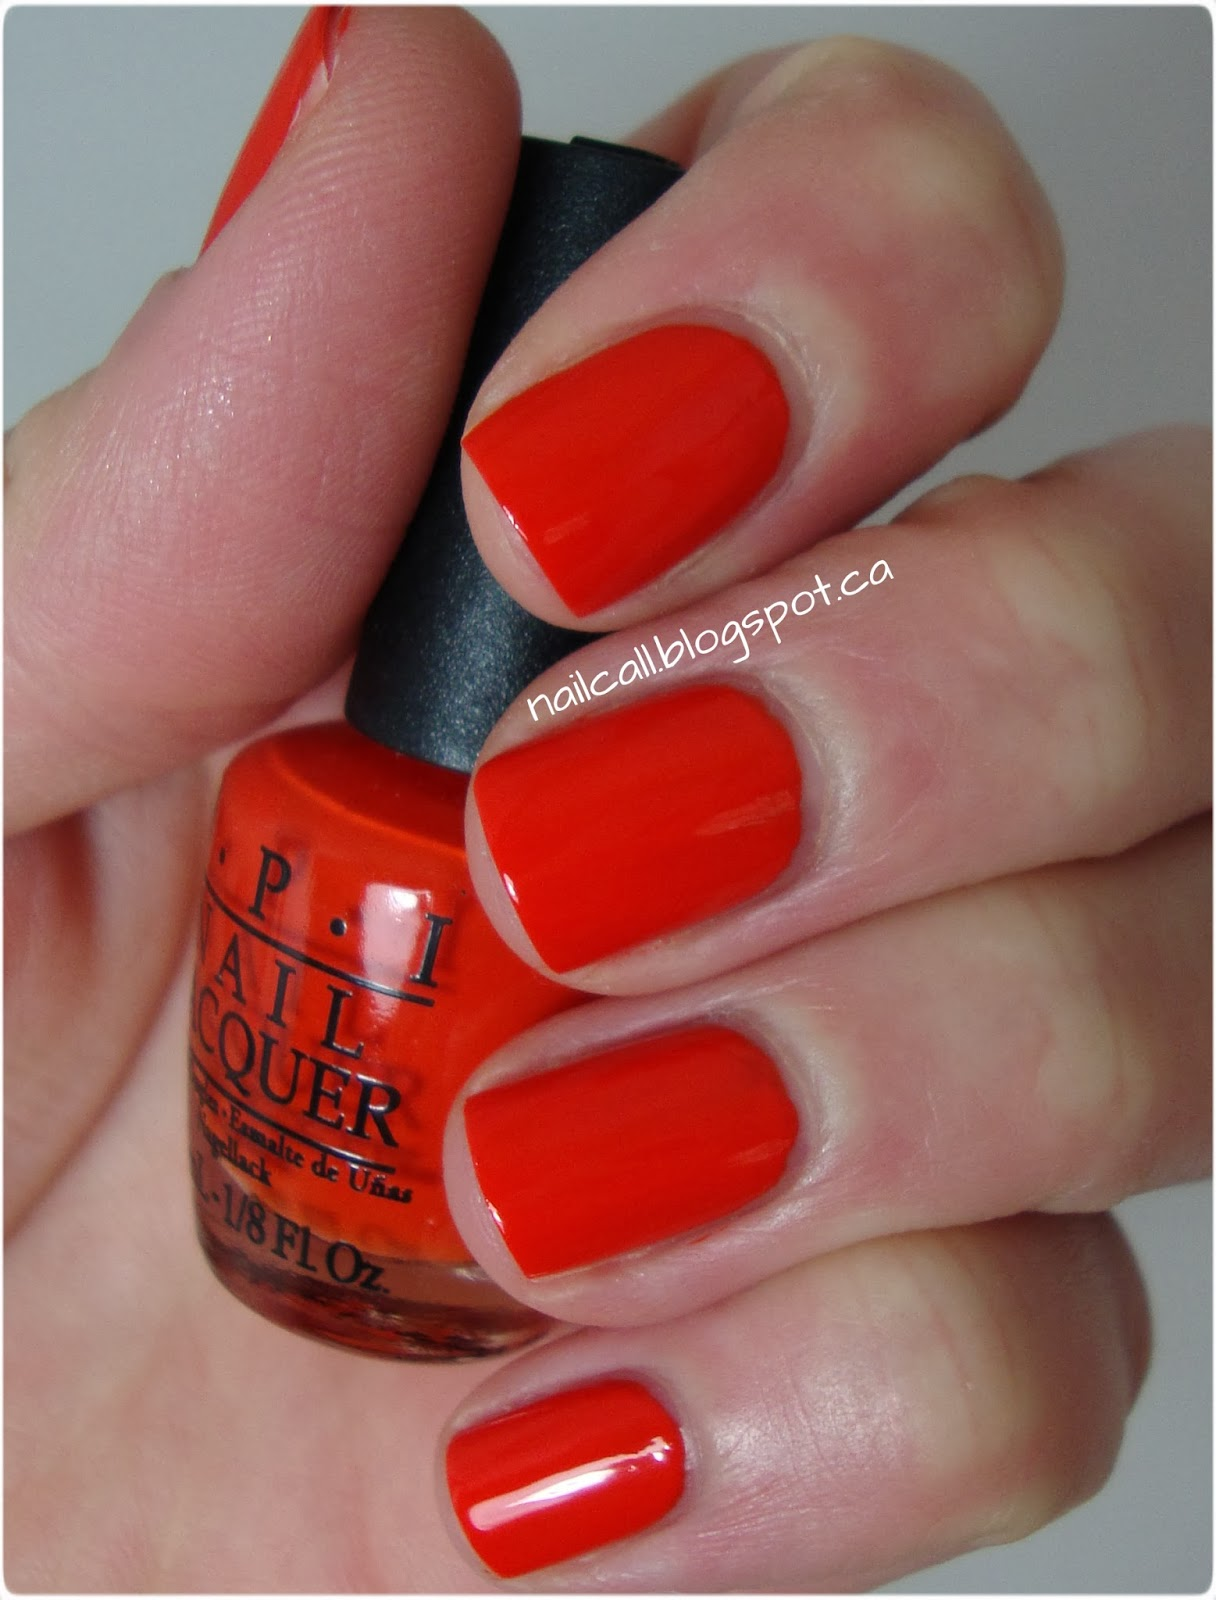 OPI The Drummer is Hot swatch